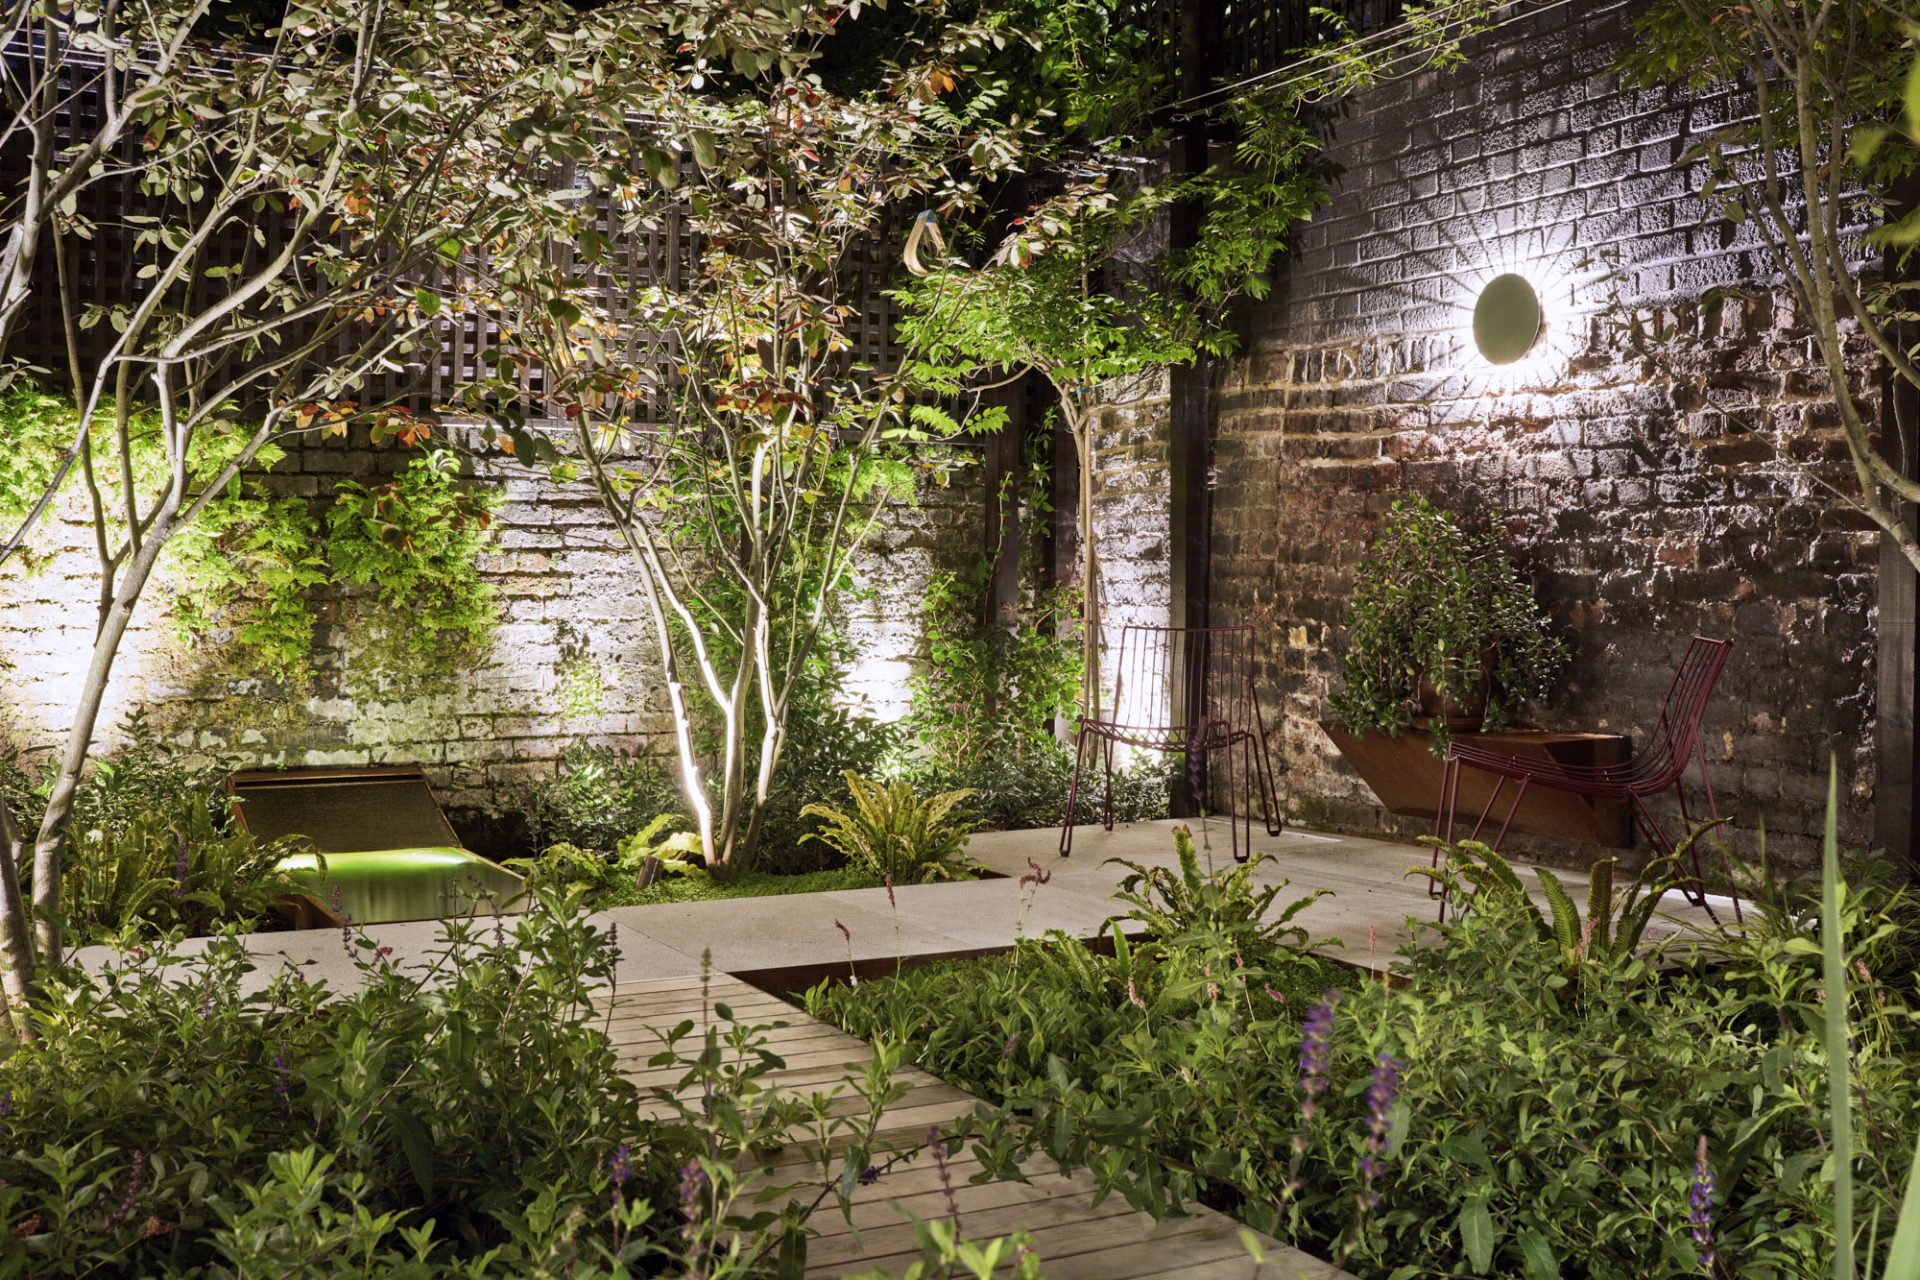 Garden design in Shepard's bush